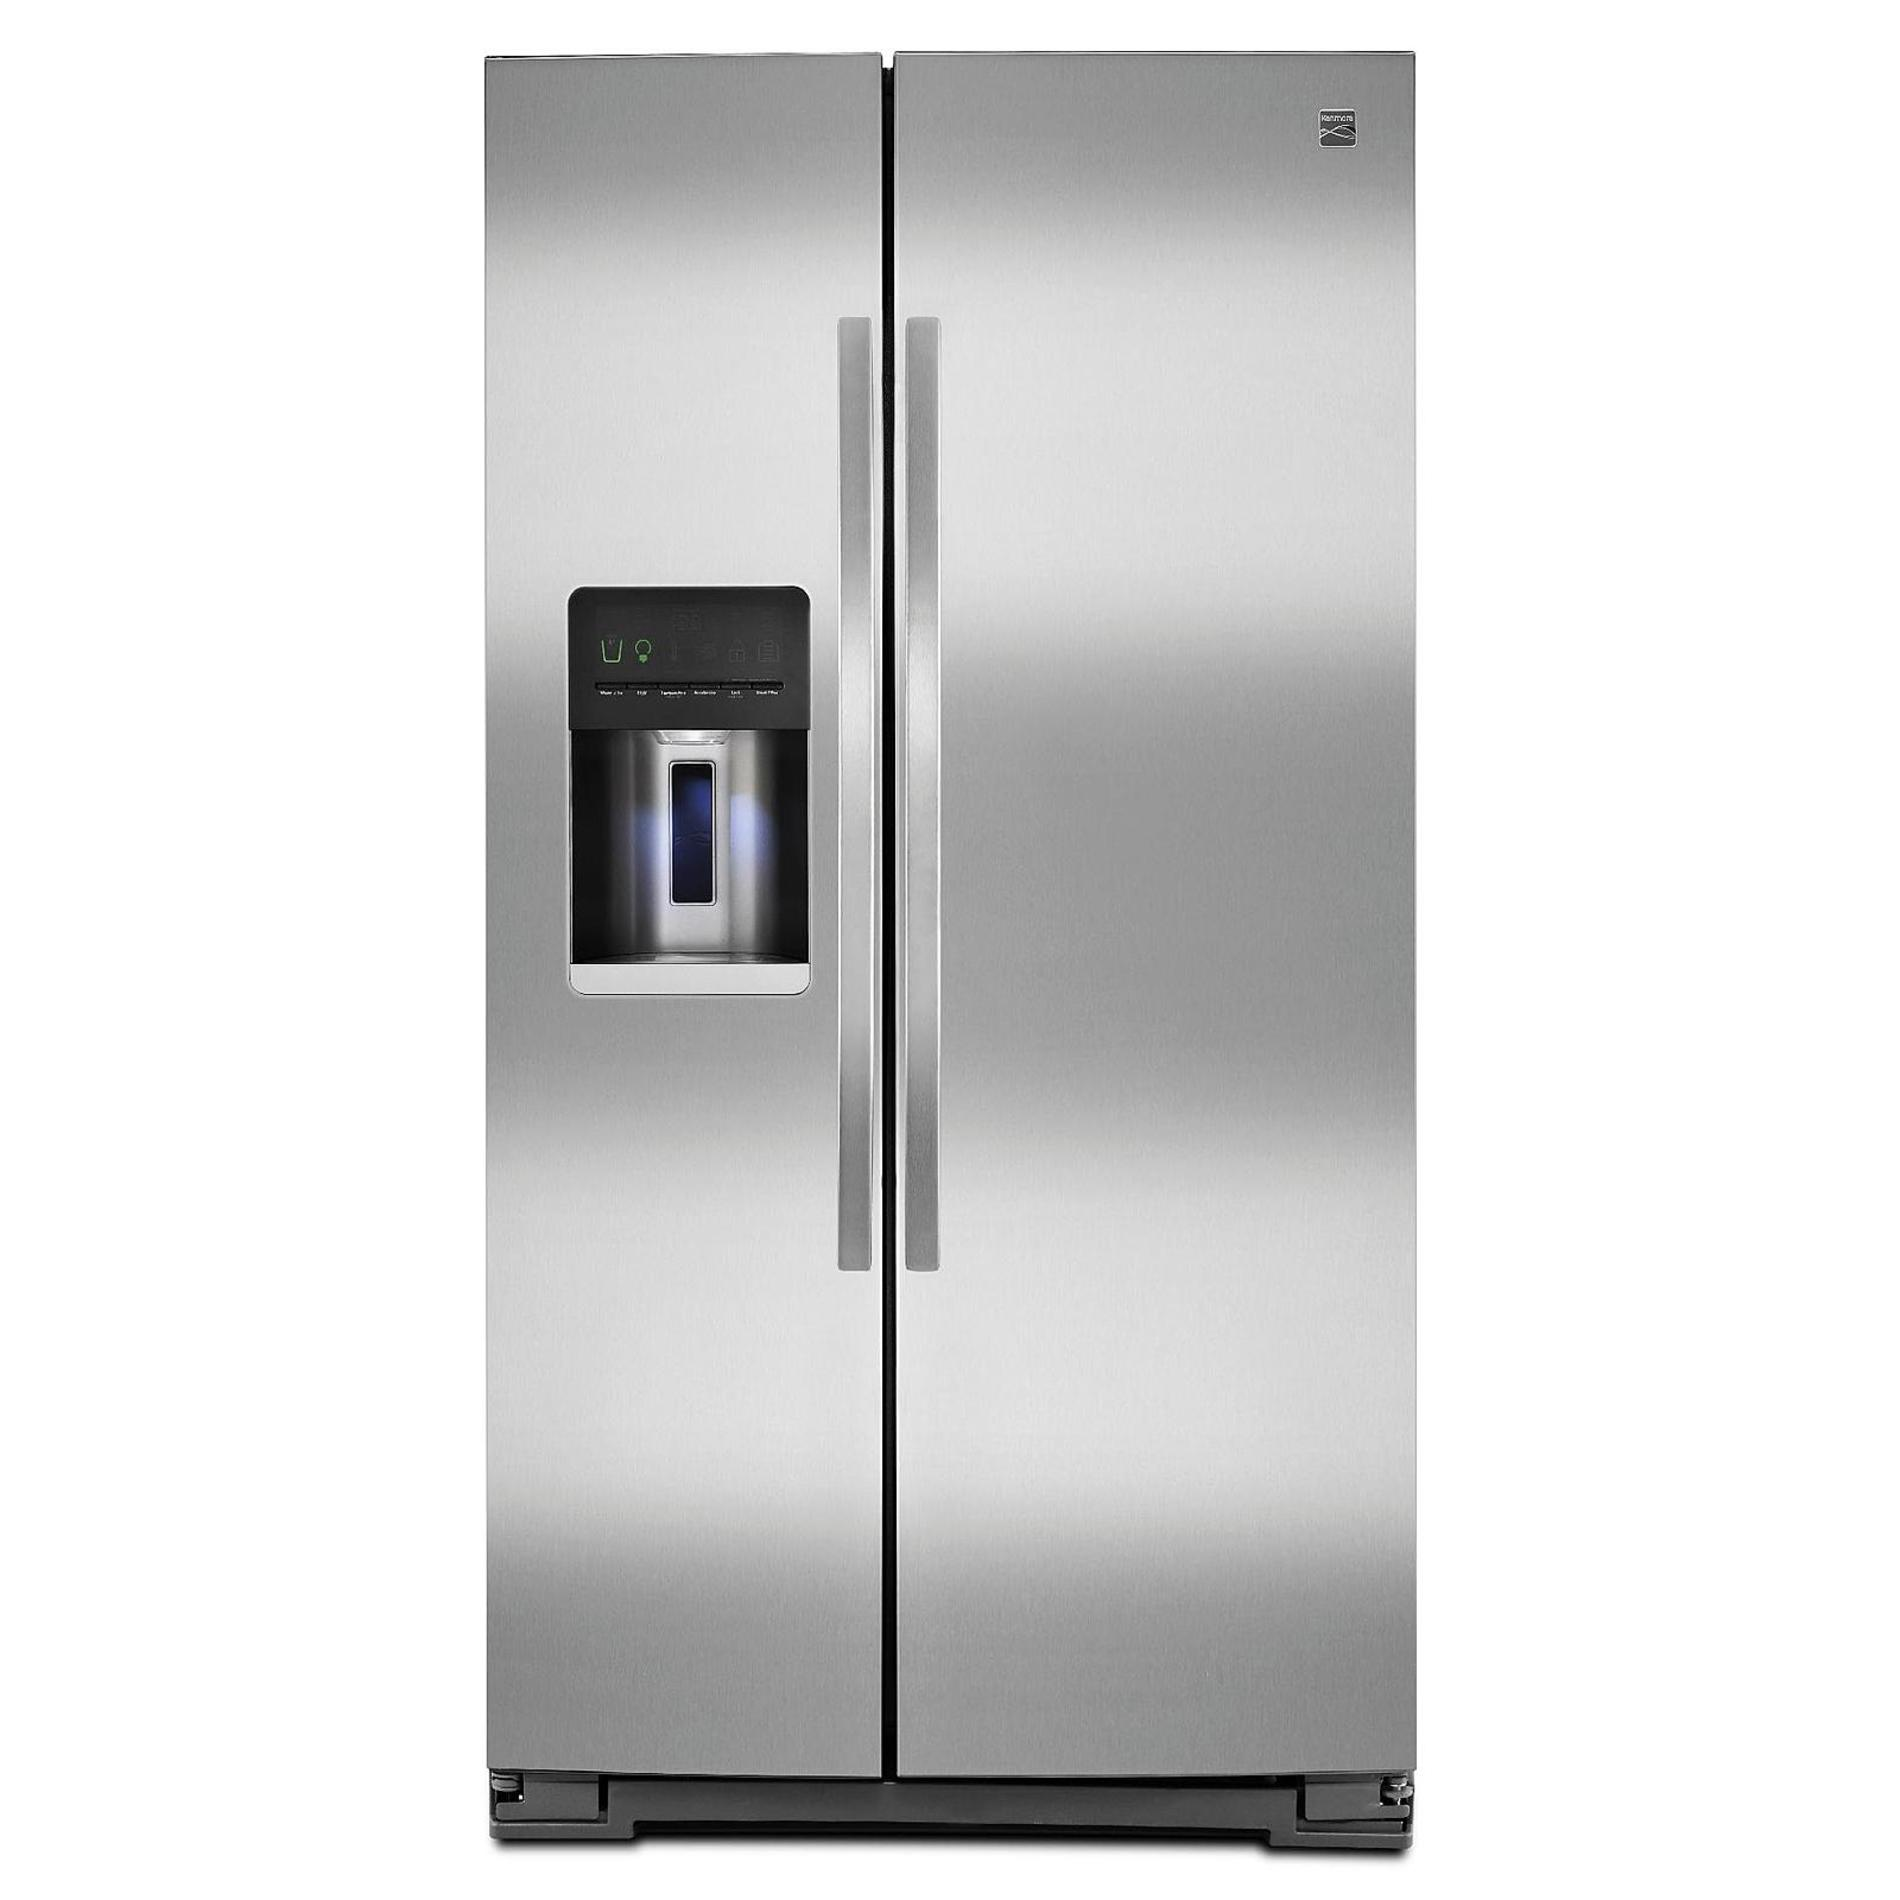 51133-26-cu-ft-Side-by-Side-Refrigerator%E2%80%94Stainless-Steel